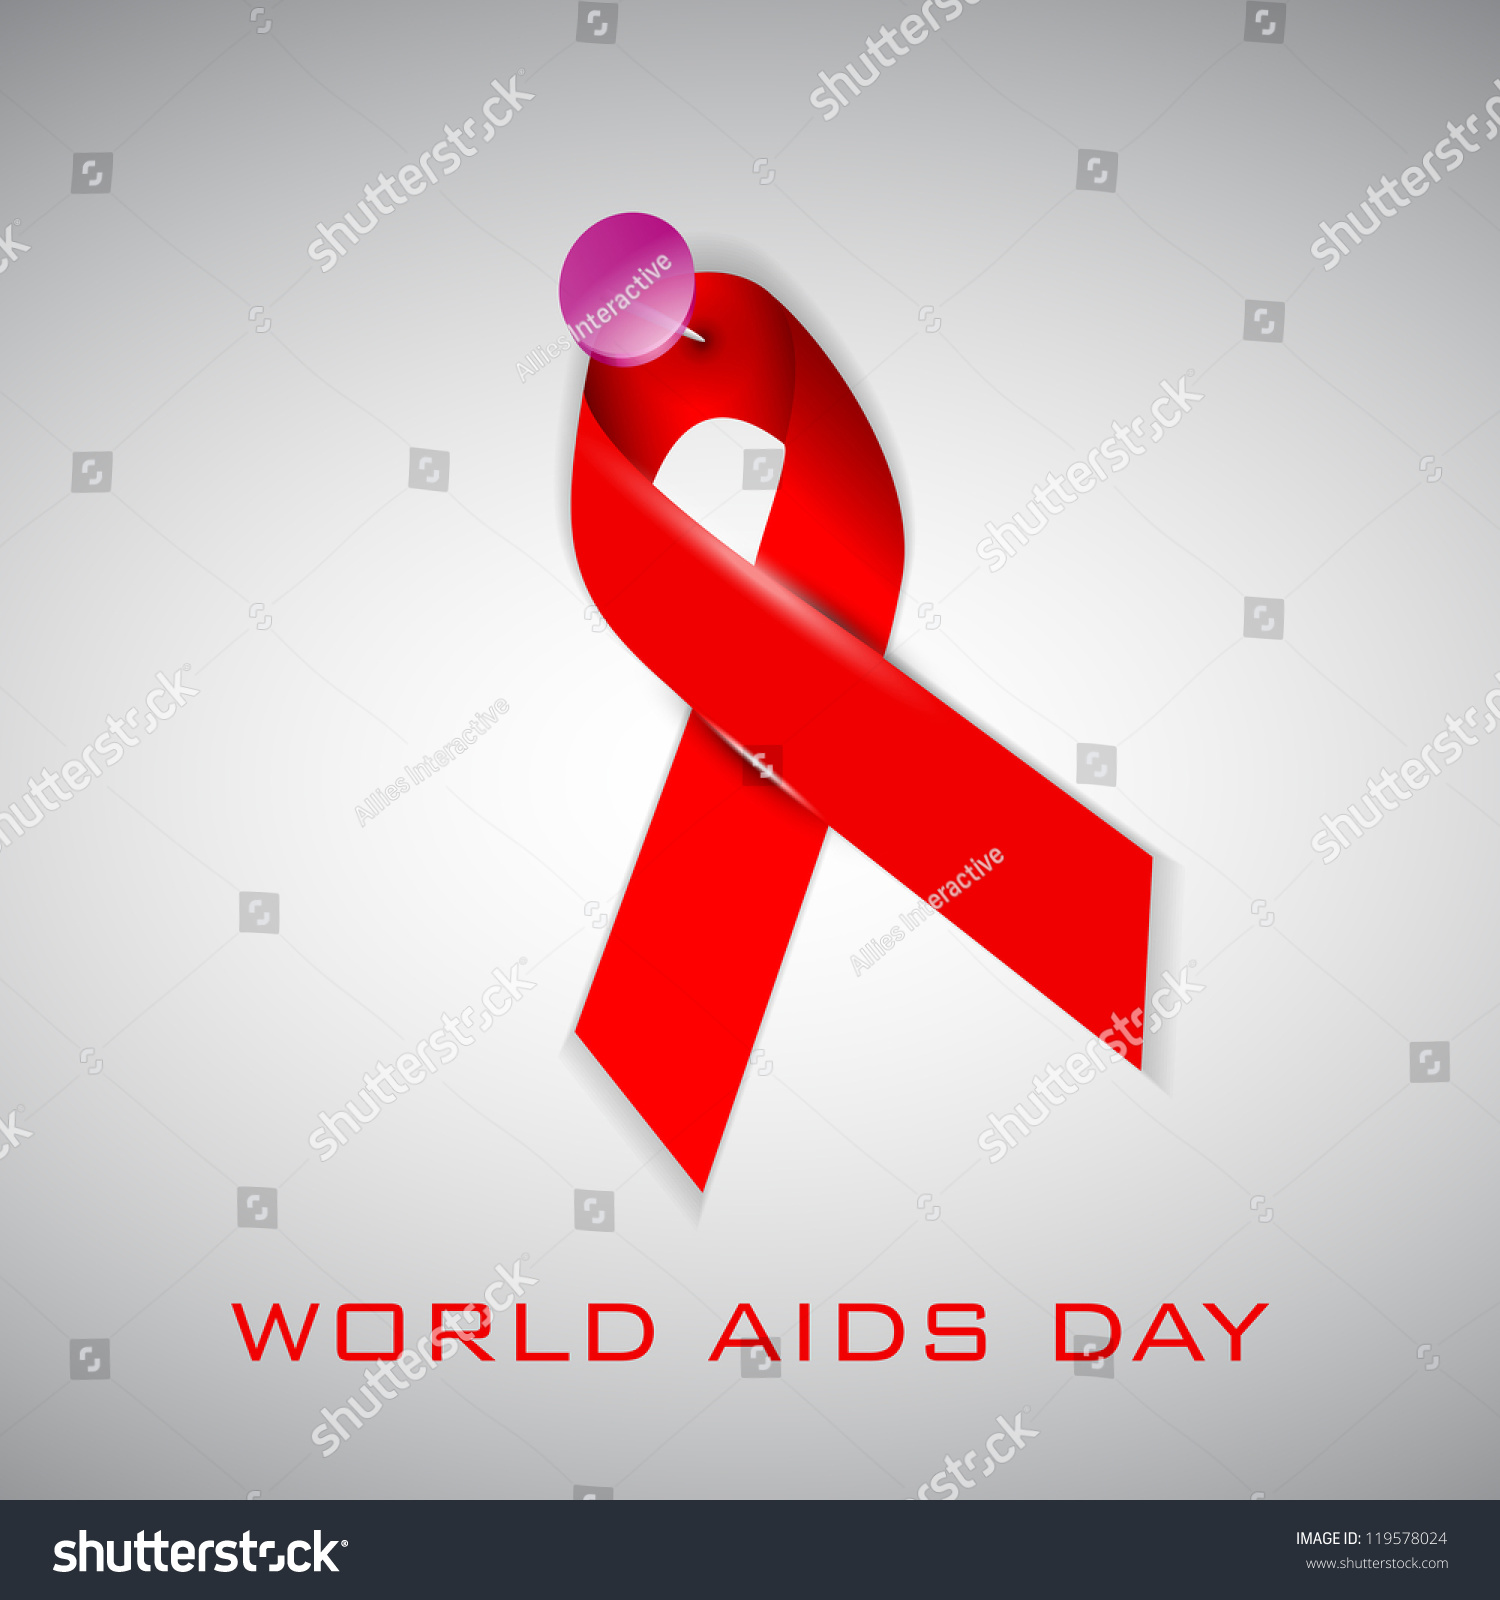 world aids day backgrounds - photo #25